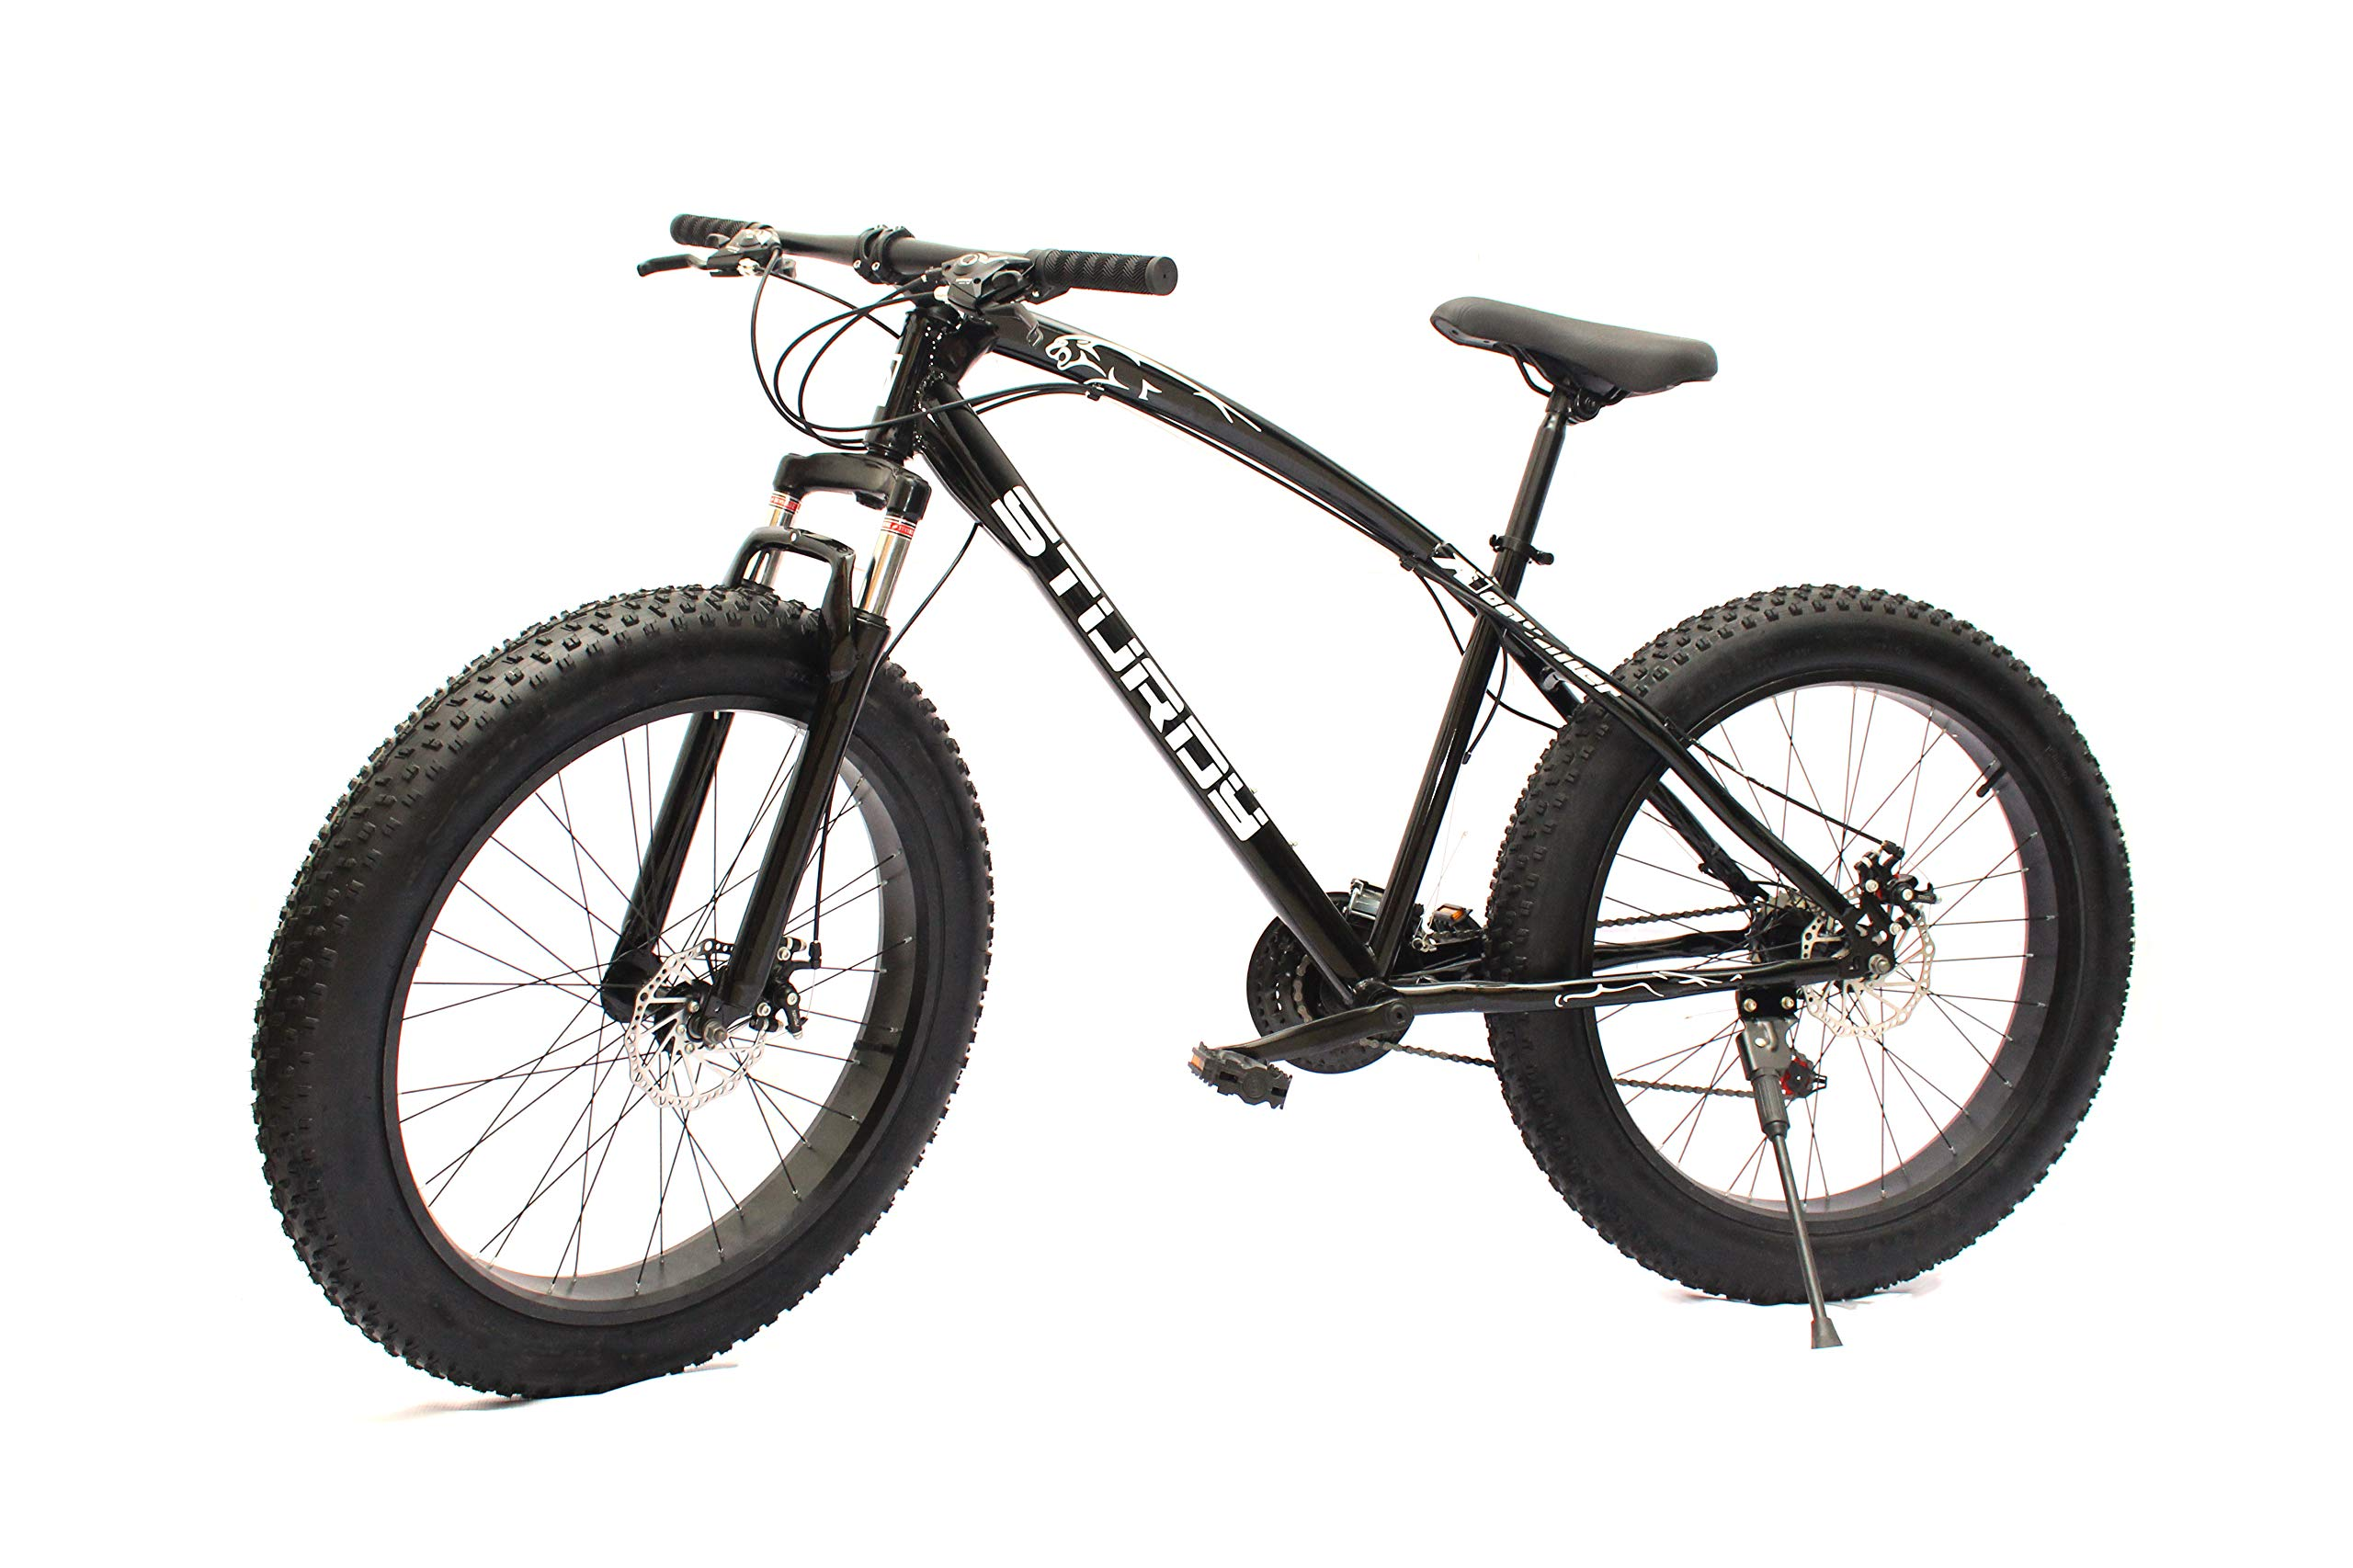 STURDY BIKES Fat Mountain Bike with 26x4 Inch Tires (Black) product image